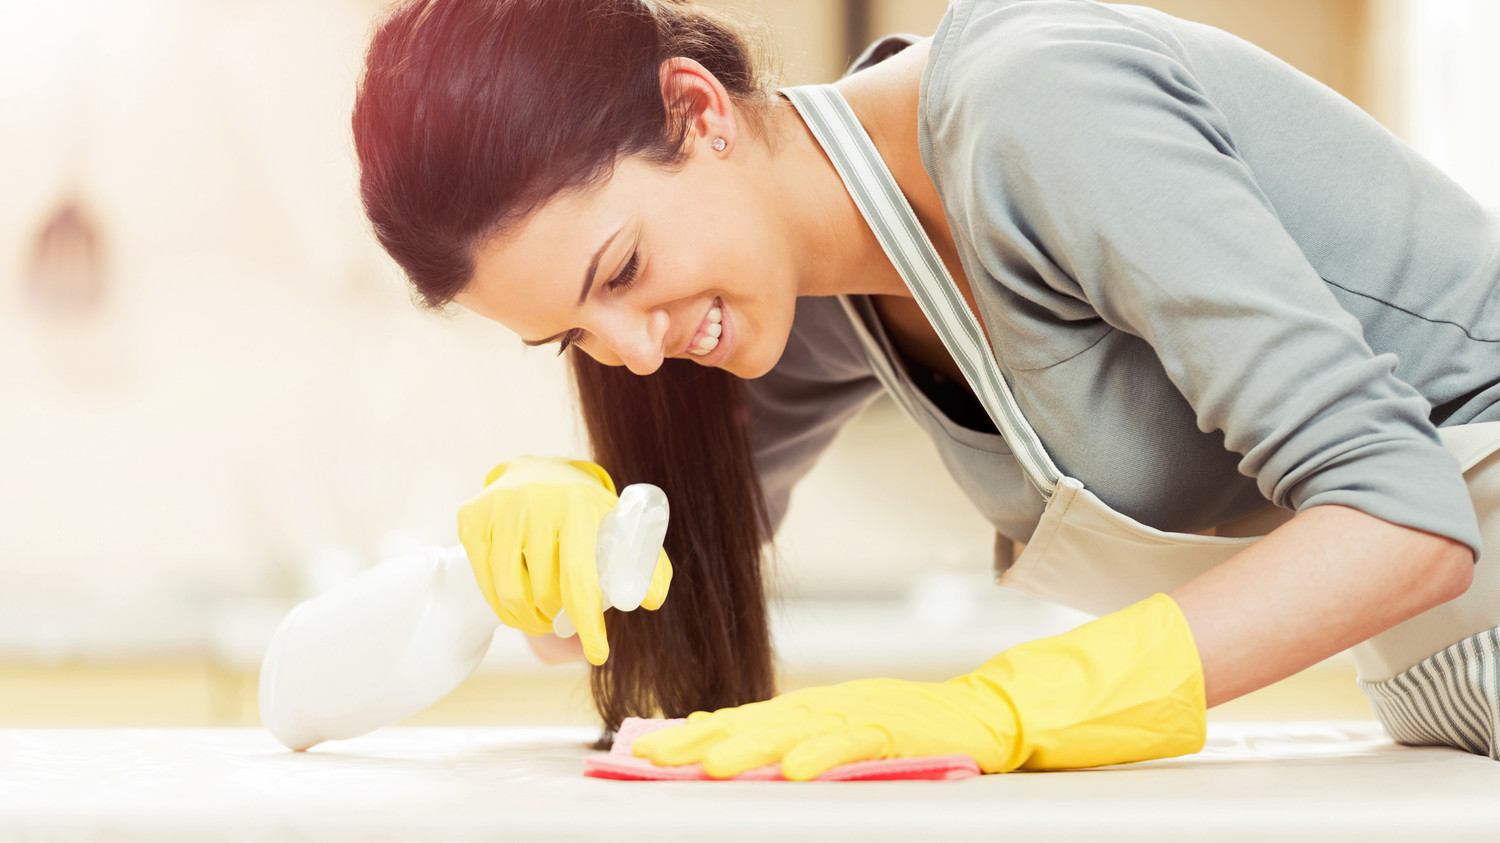 The Right Way To Clean With Bleach In Your Home